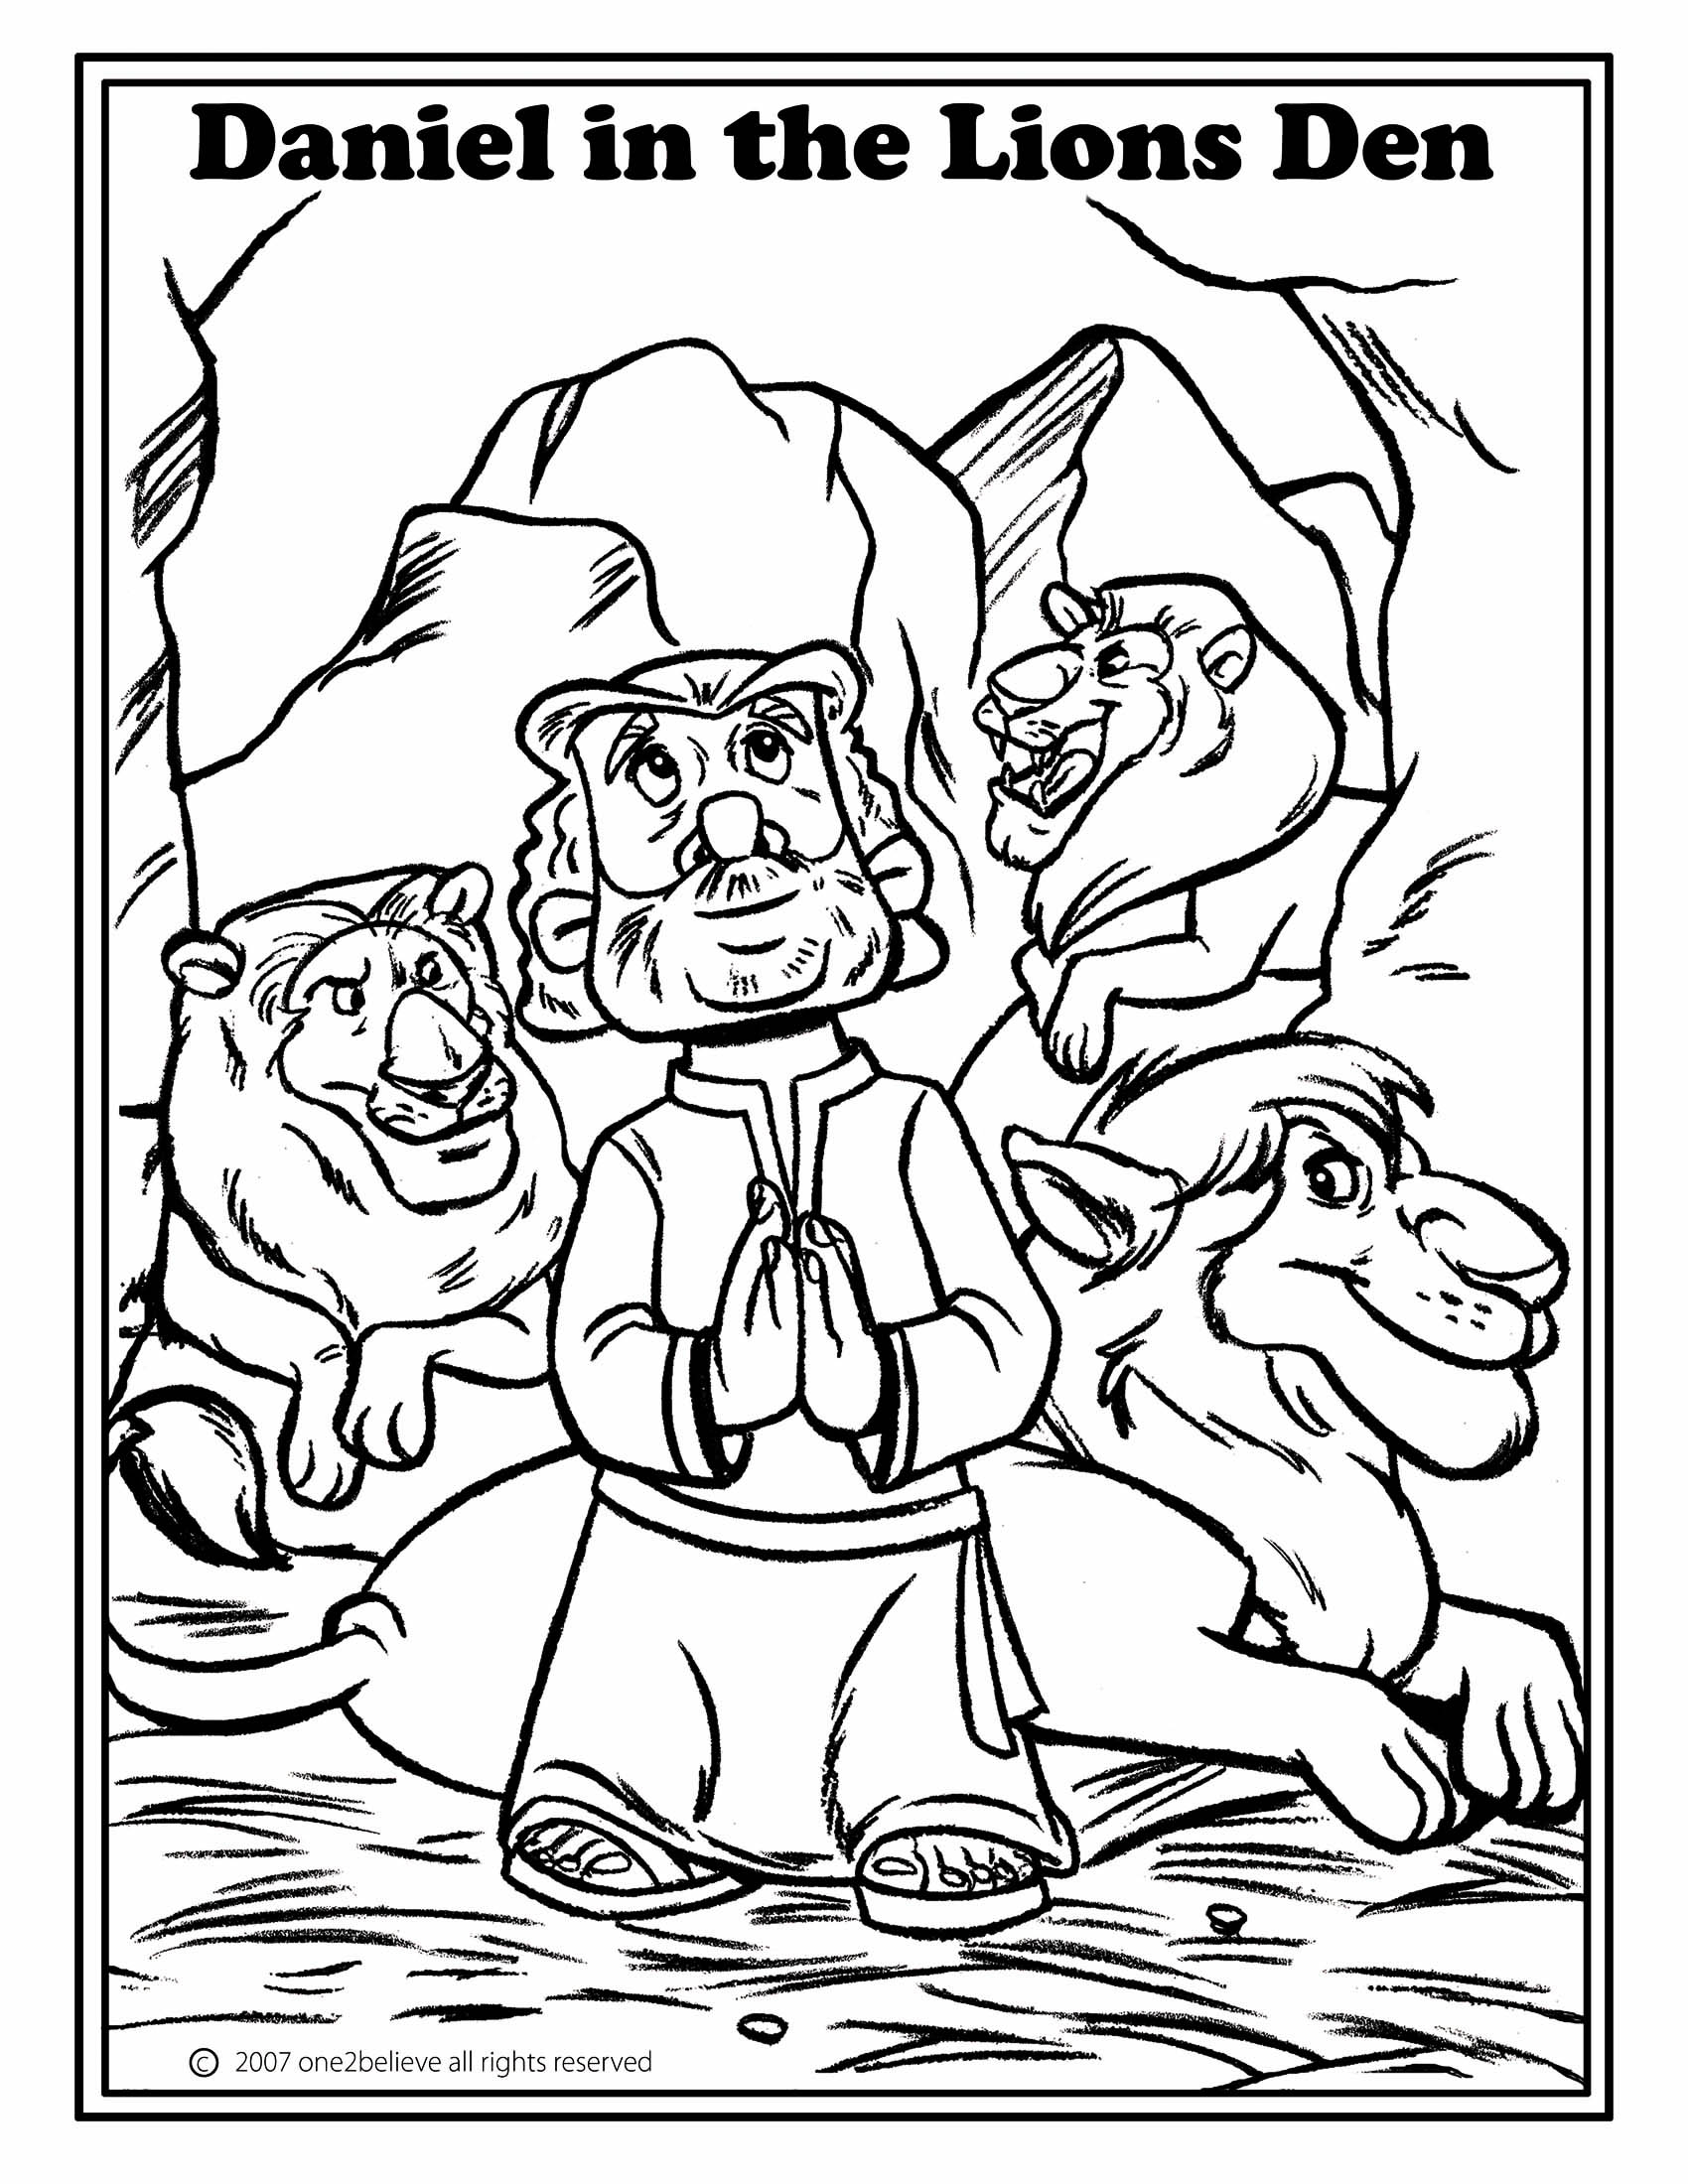 Coloring Pages Free Coloring Pages Bible children bible stories coloring pages az best free for children